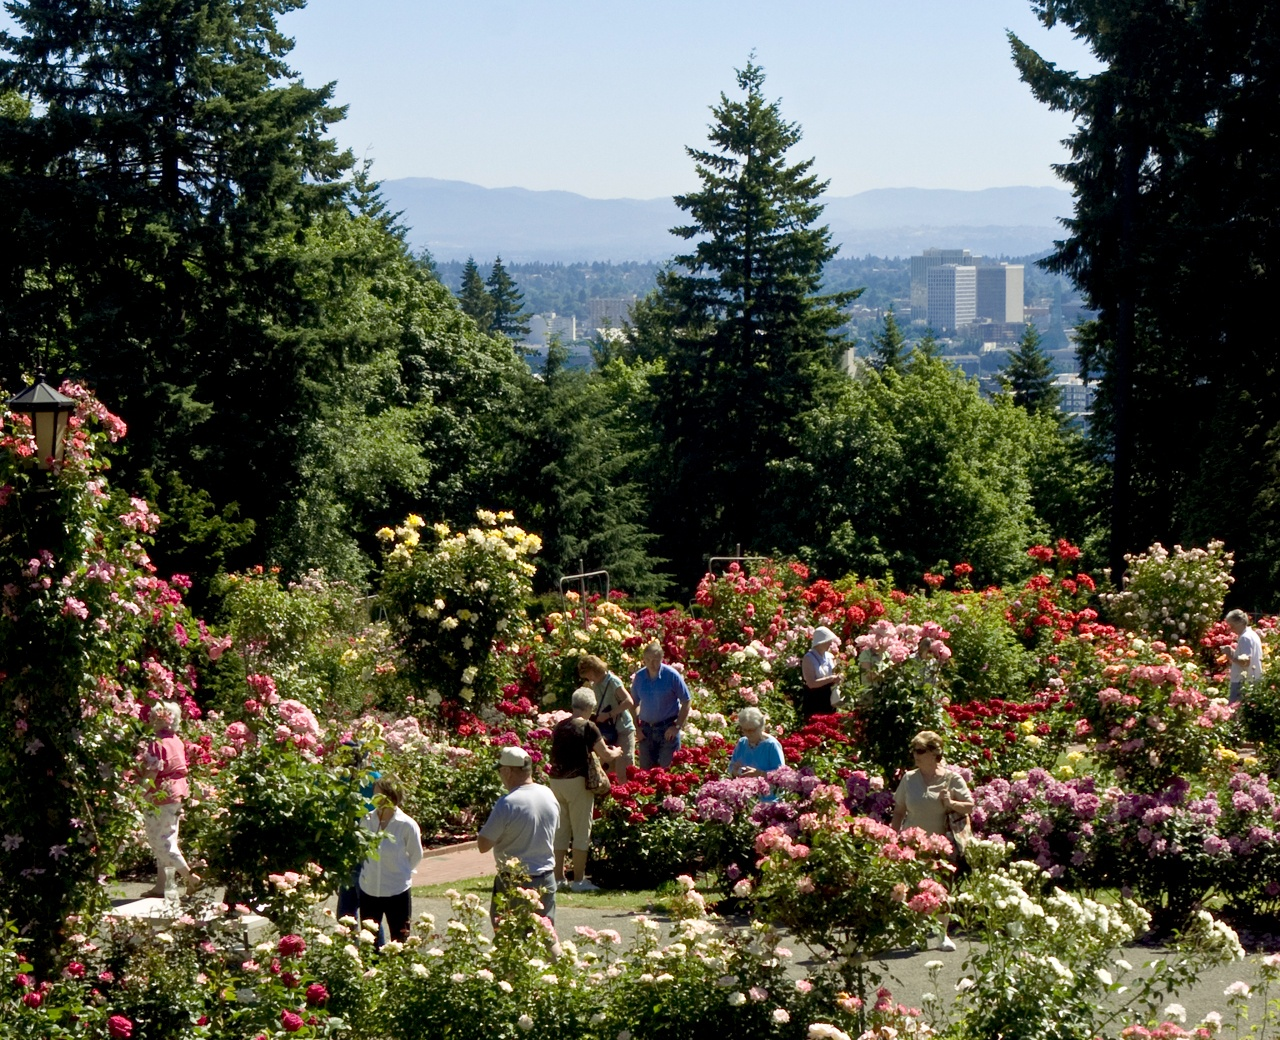 people visiting a blooming Rose Garden in Washington Park